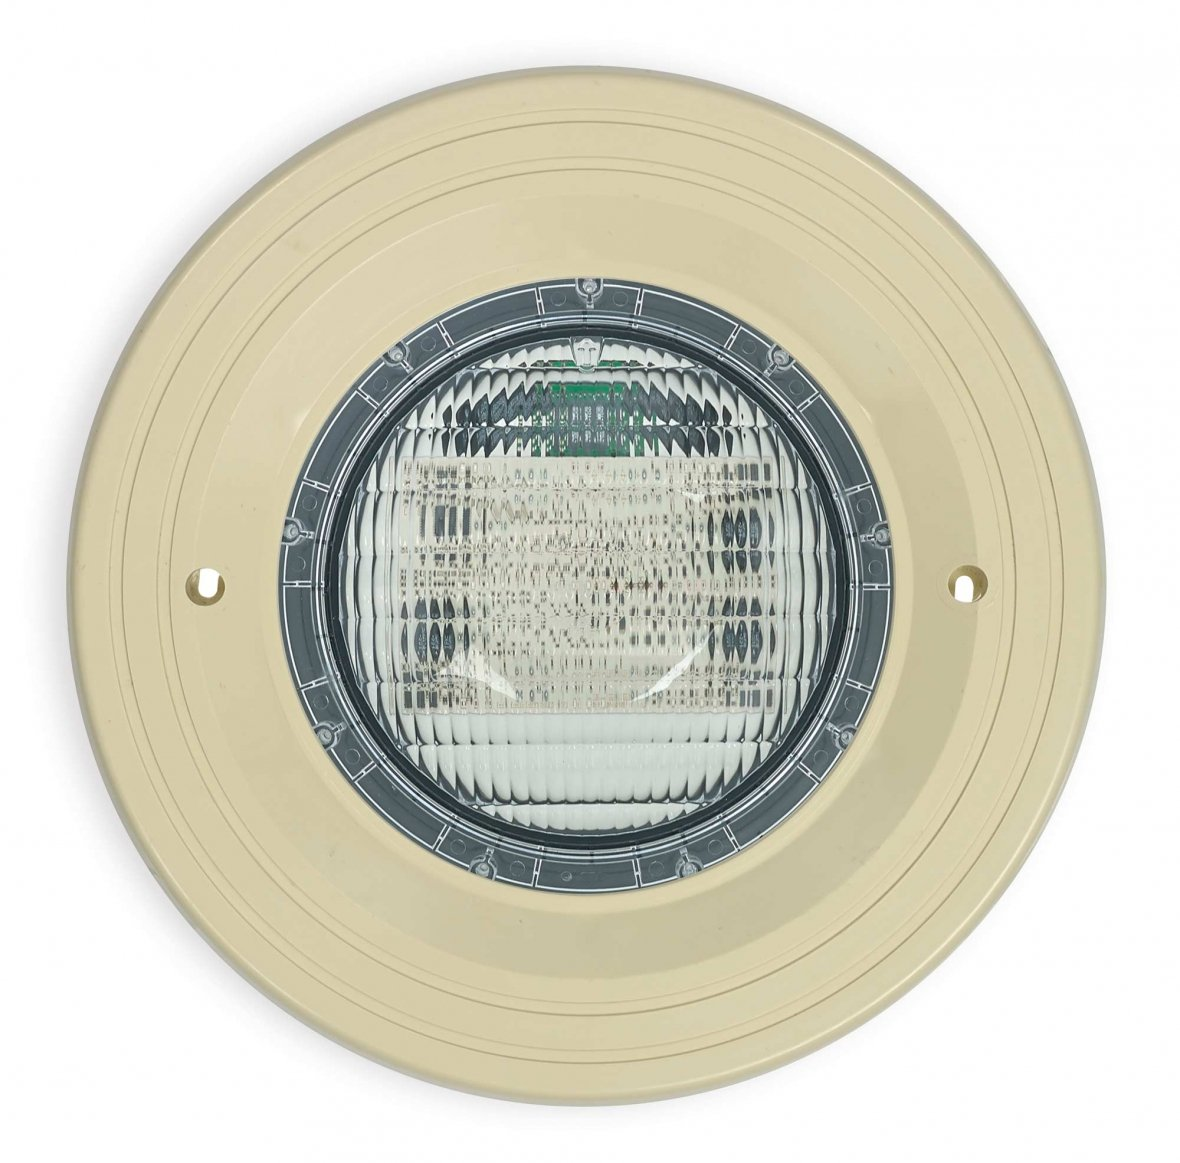 Éclairage LED submersible beige